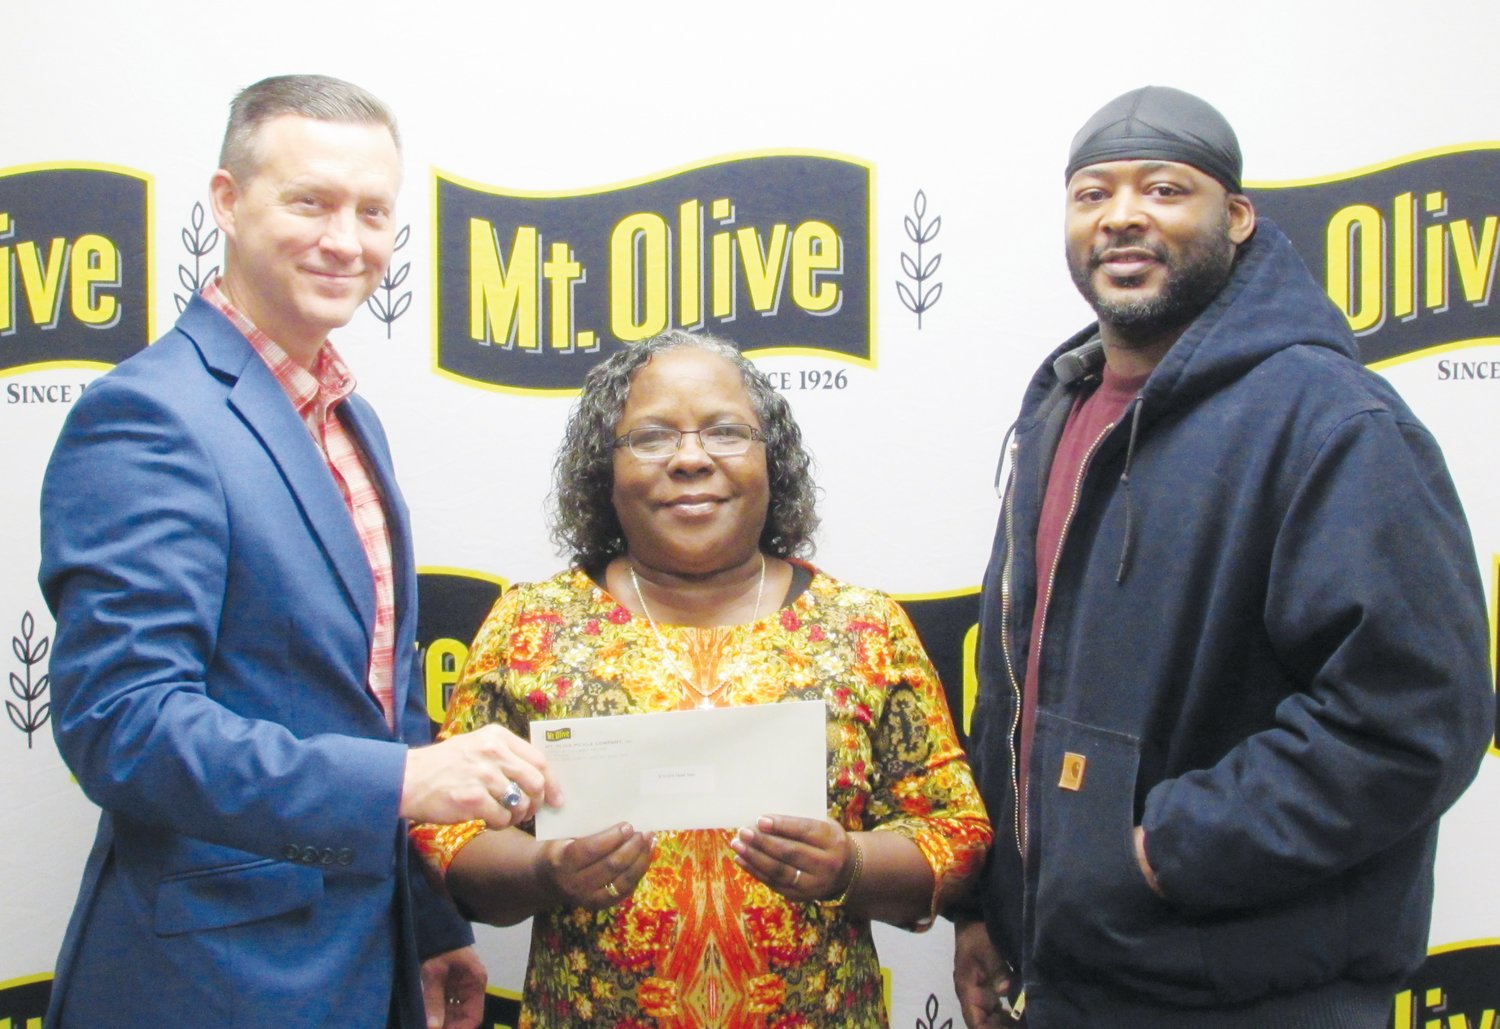 Mt. Olive Pickle Company's Employees Community Fund Chairman Patrick Muston, left, presents a check for $965 to Betty Faison, center director for WAGES Head Start. Also pictured is Mt. Olive Pickle Employees Community Fund member Tony Darden.